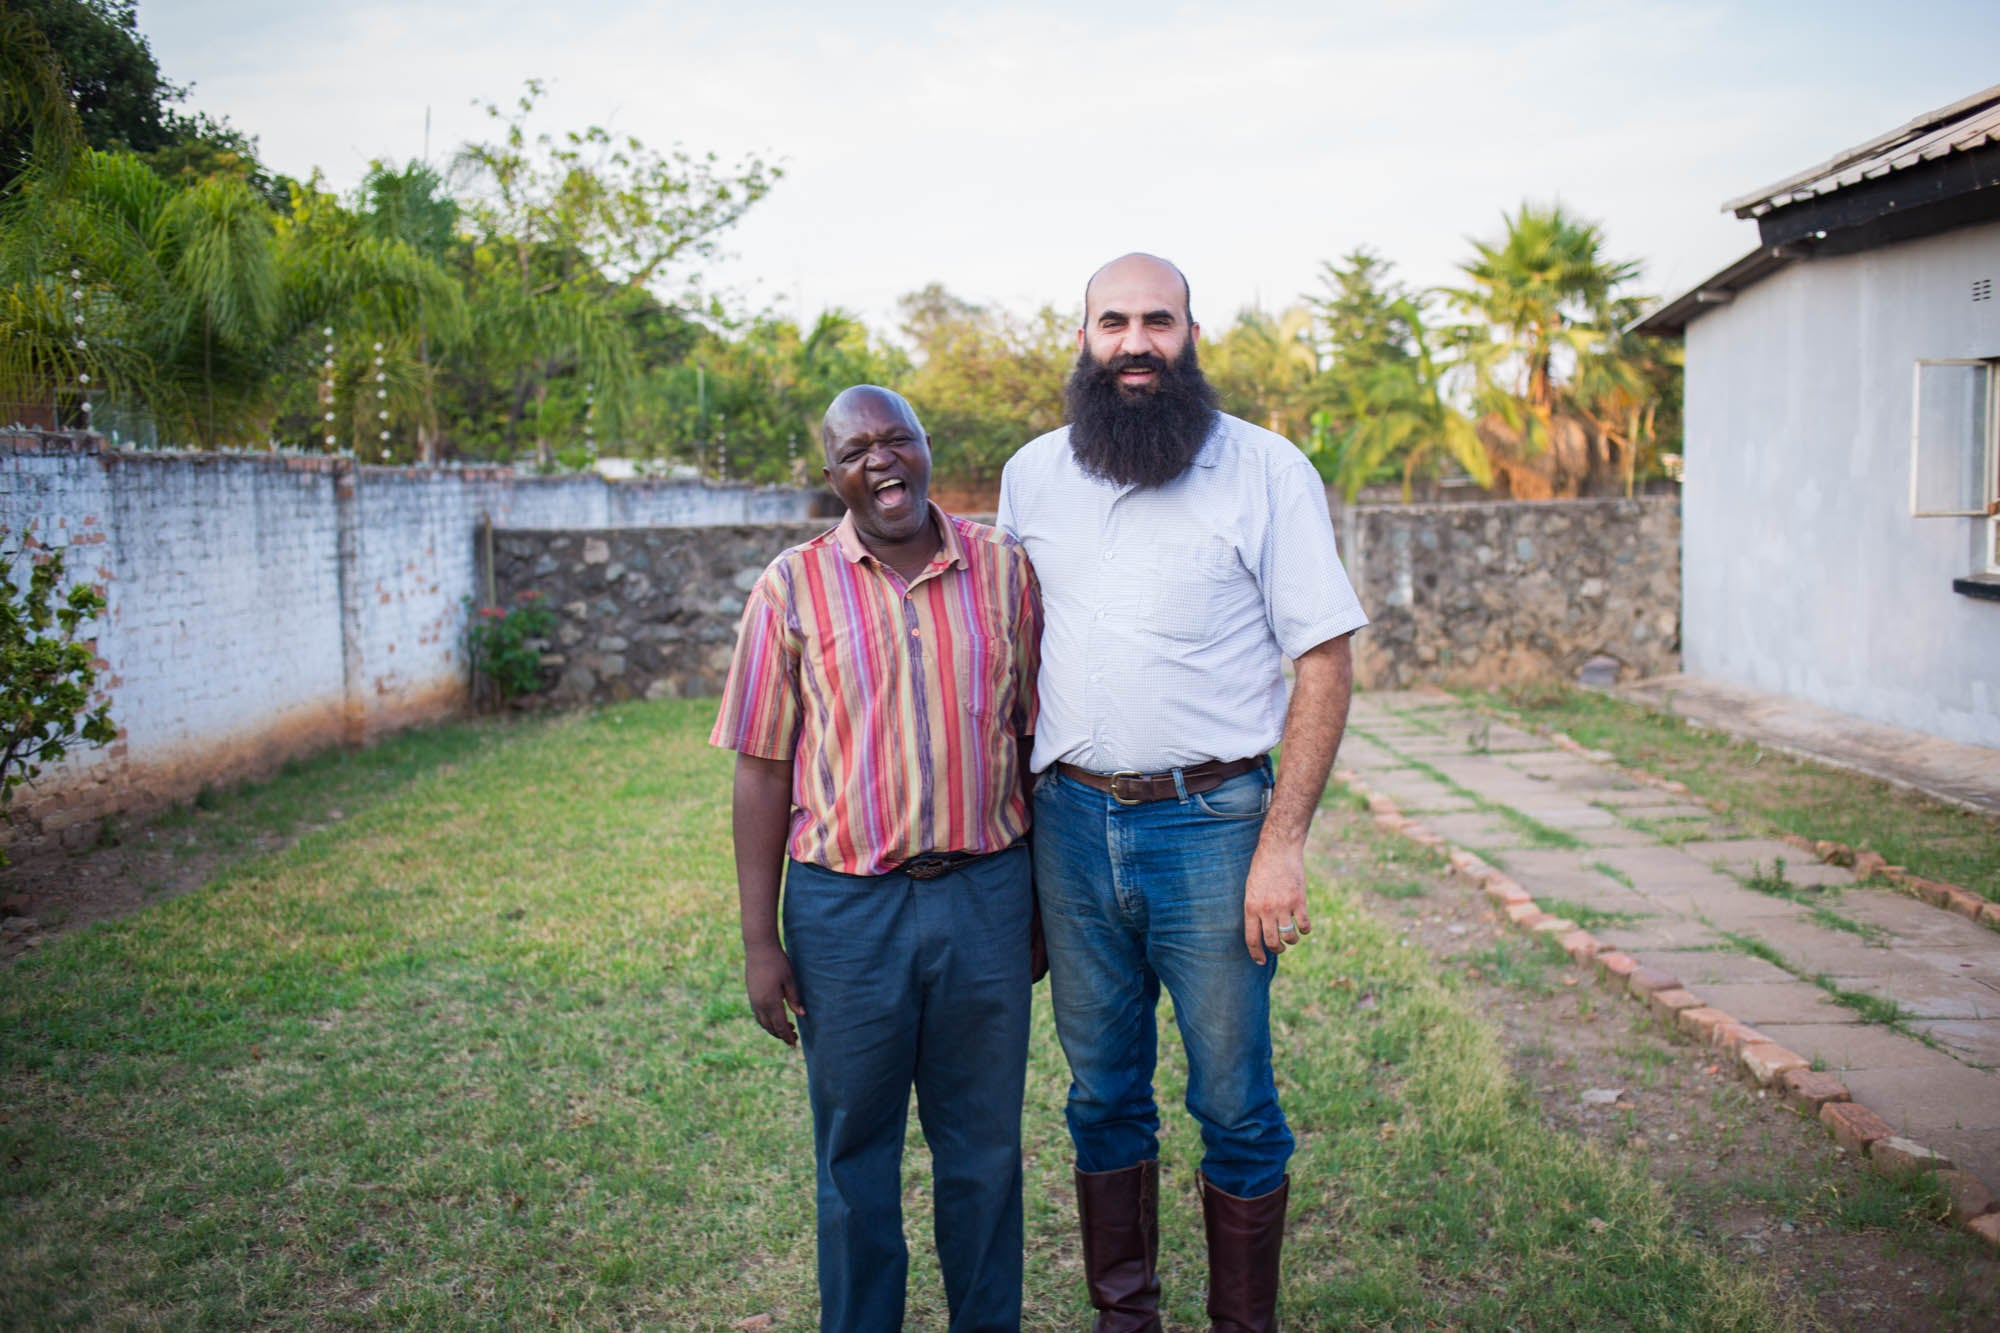 The joy of loving others - Founders of Zambeezi organic, Fair Trade, ethical, hydrating beeswax lip balm (chapstick) and handcrafted beeswax soap